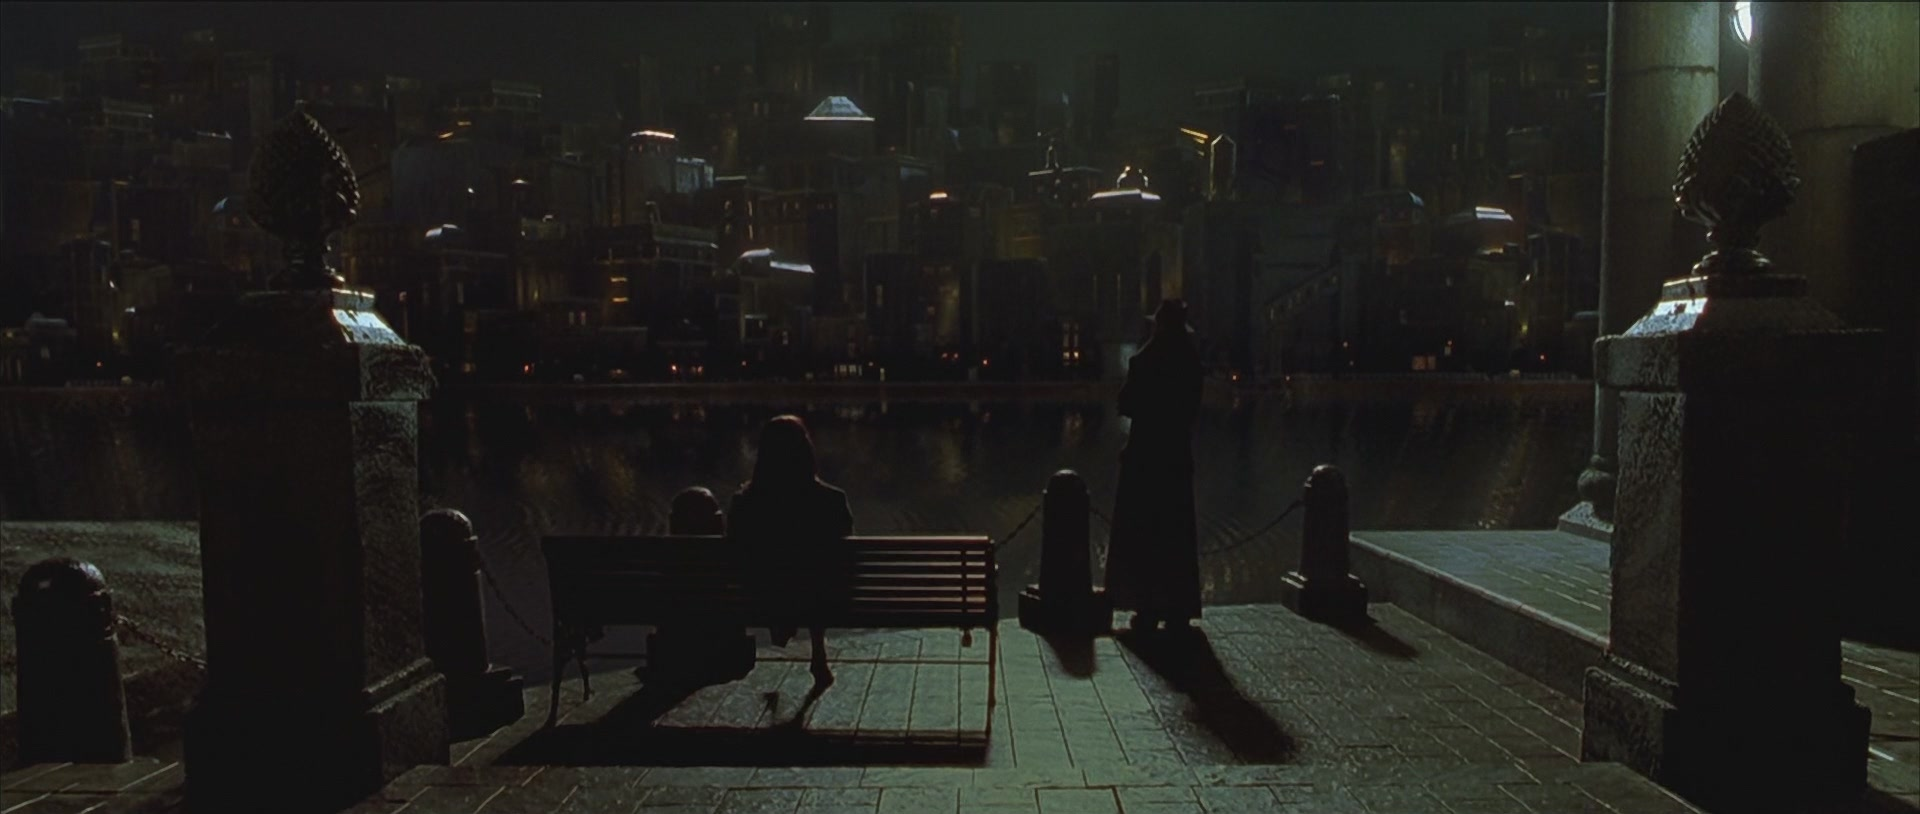 Cityscape and Skyline in Dark City, 1998, via Nir Shalev, Commentary Track, 2011